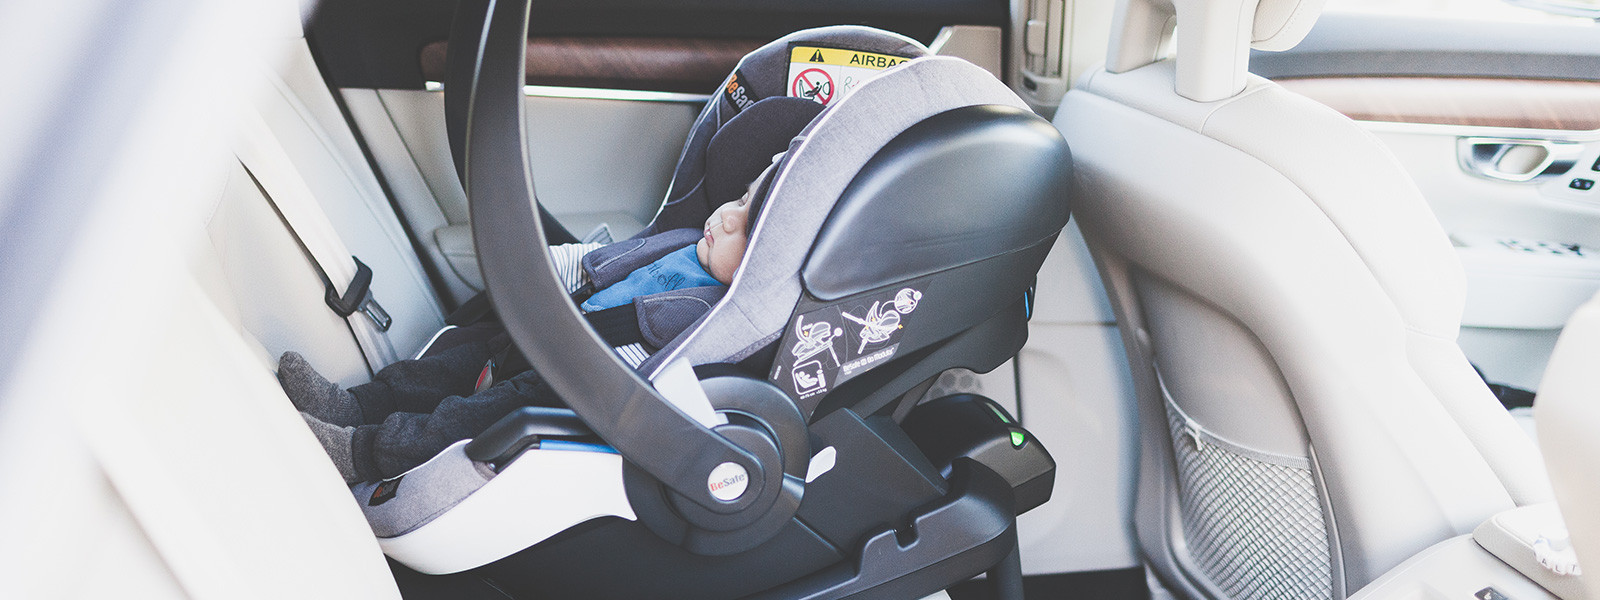 Incredible When To Change Car Seats For Children A Full Overview Gmtry Best Dining Table And Chair Ideas Images Gmtryco